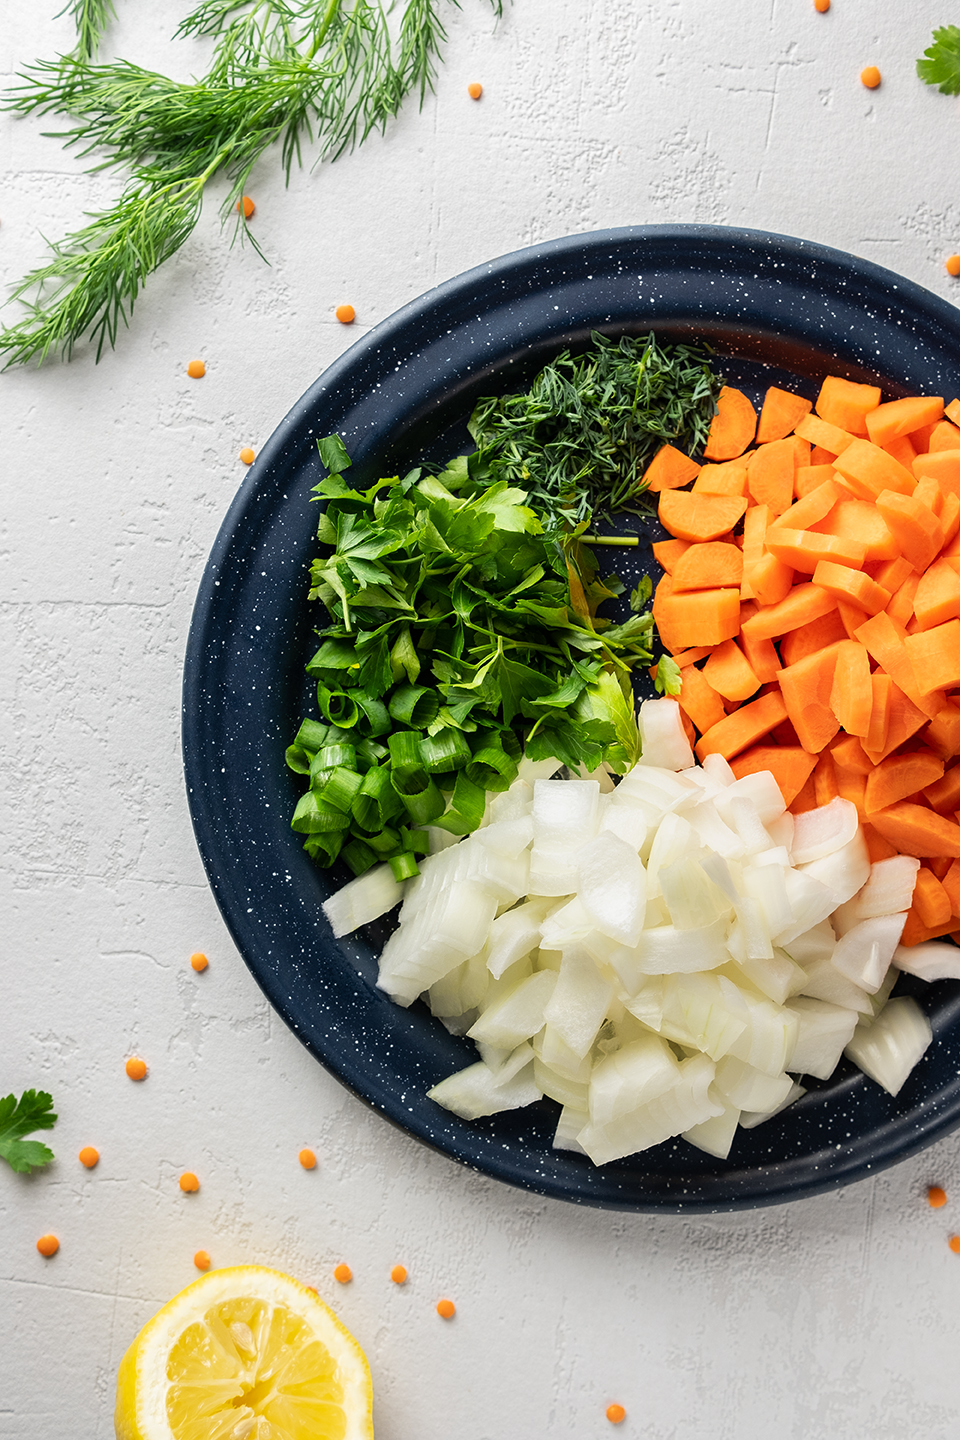 Ingredients for soup, Onions, Carrots, Scallions, Lemon, Parsley and Dill.  Chopped on a plate.